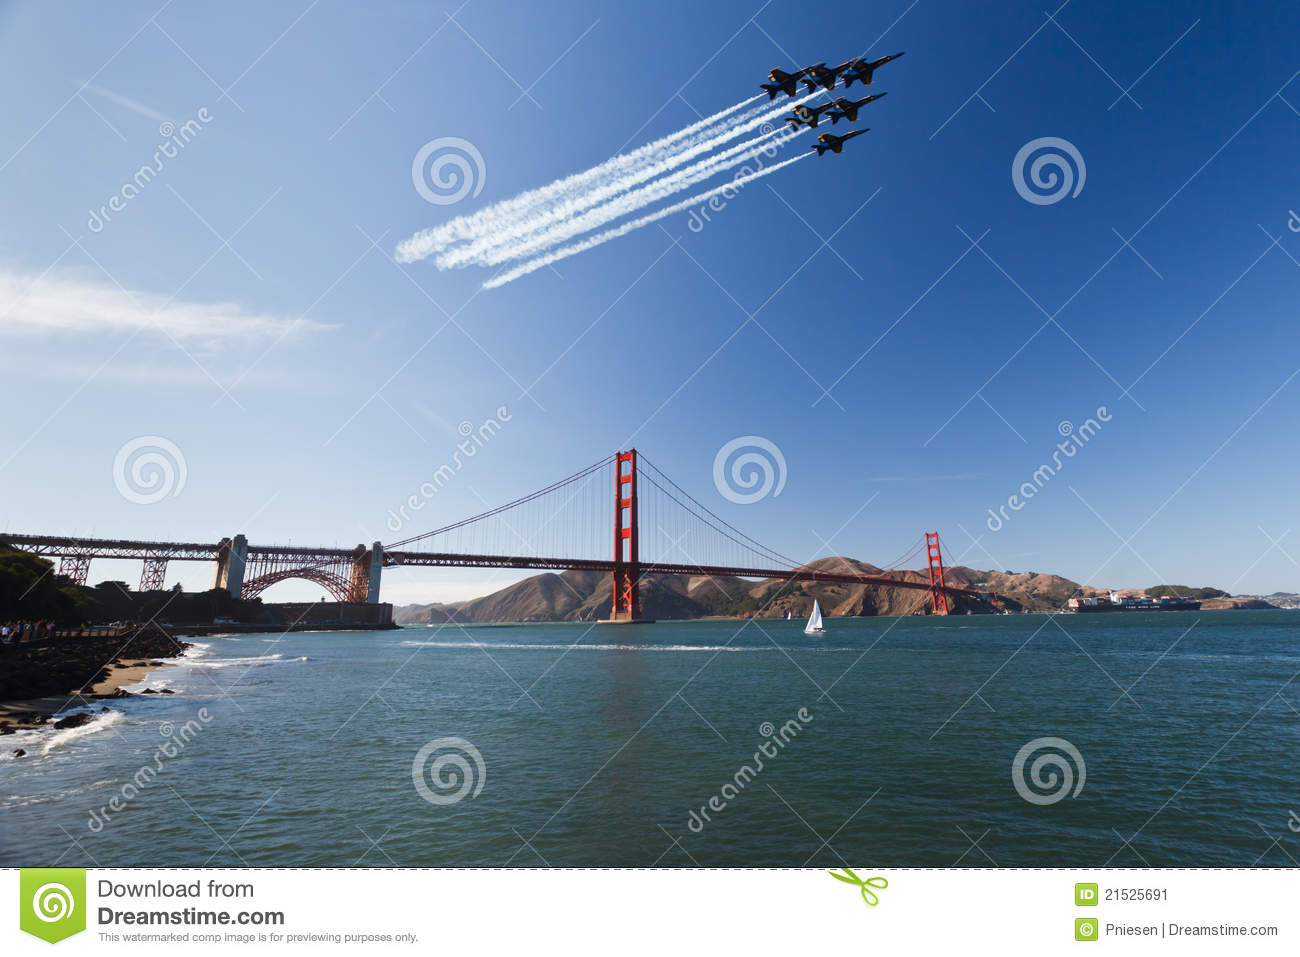 the fighter jets flight through time The path to becoming a fighter pilot follows  of flying jets fighter pilots undergo the  flight training marine fighter pilots must.